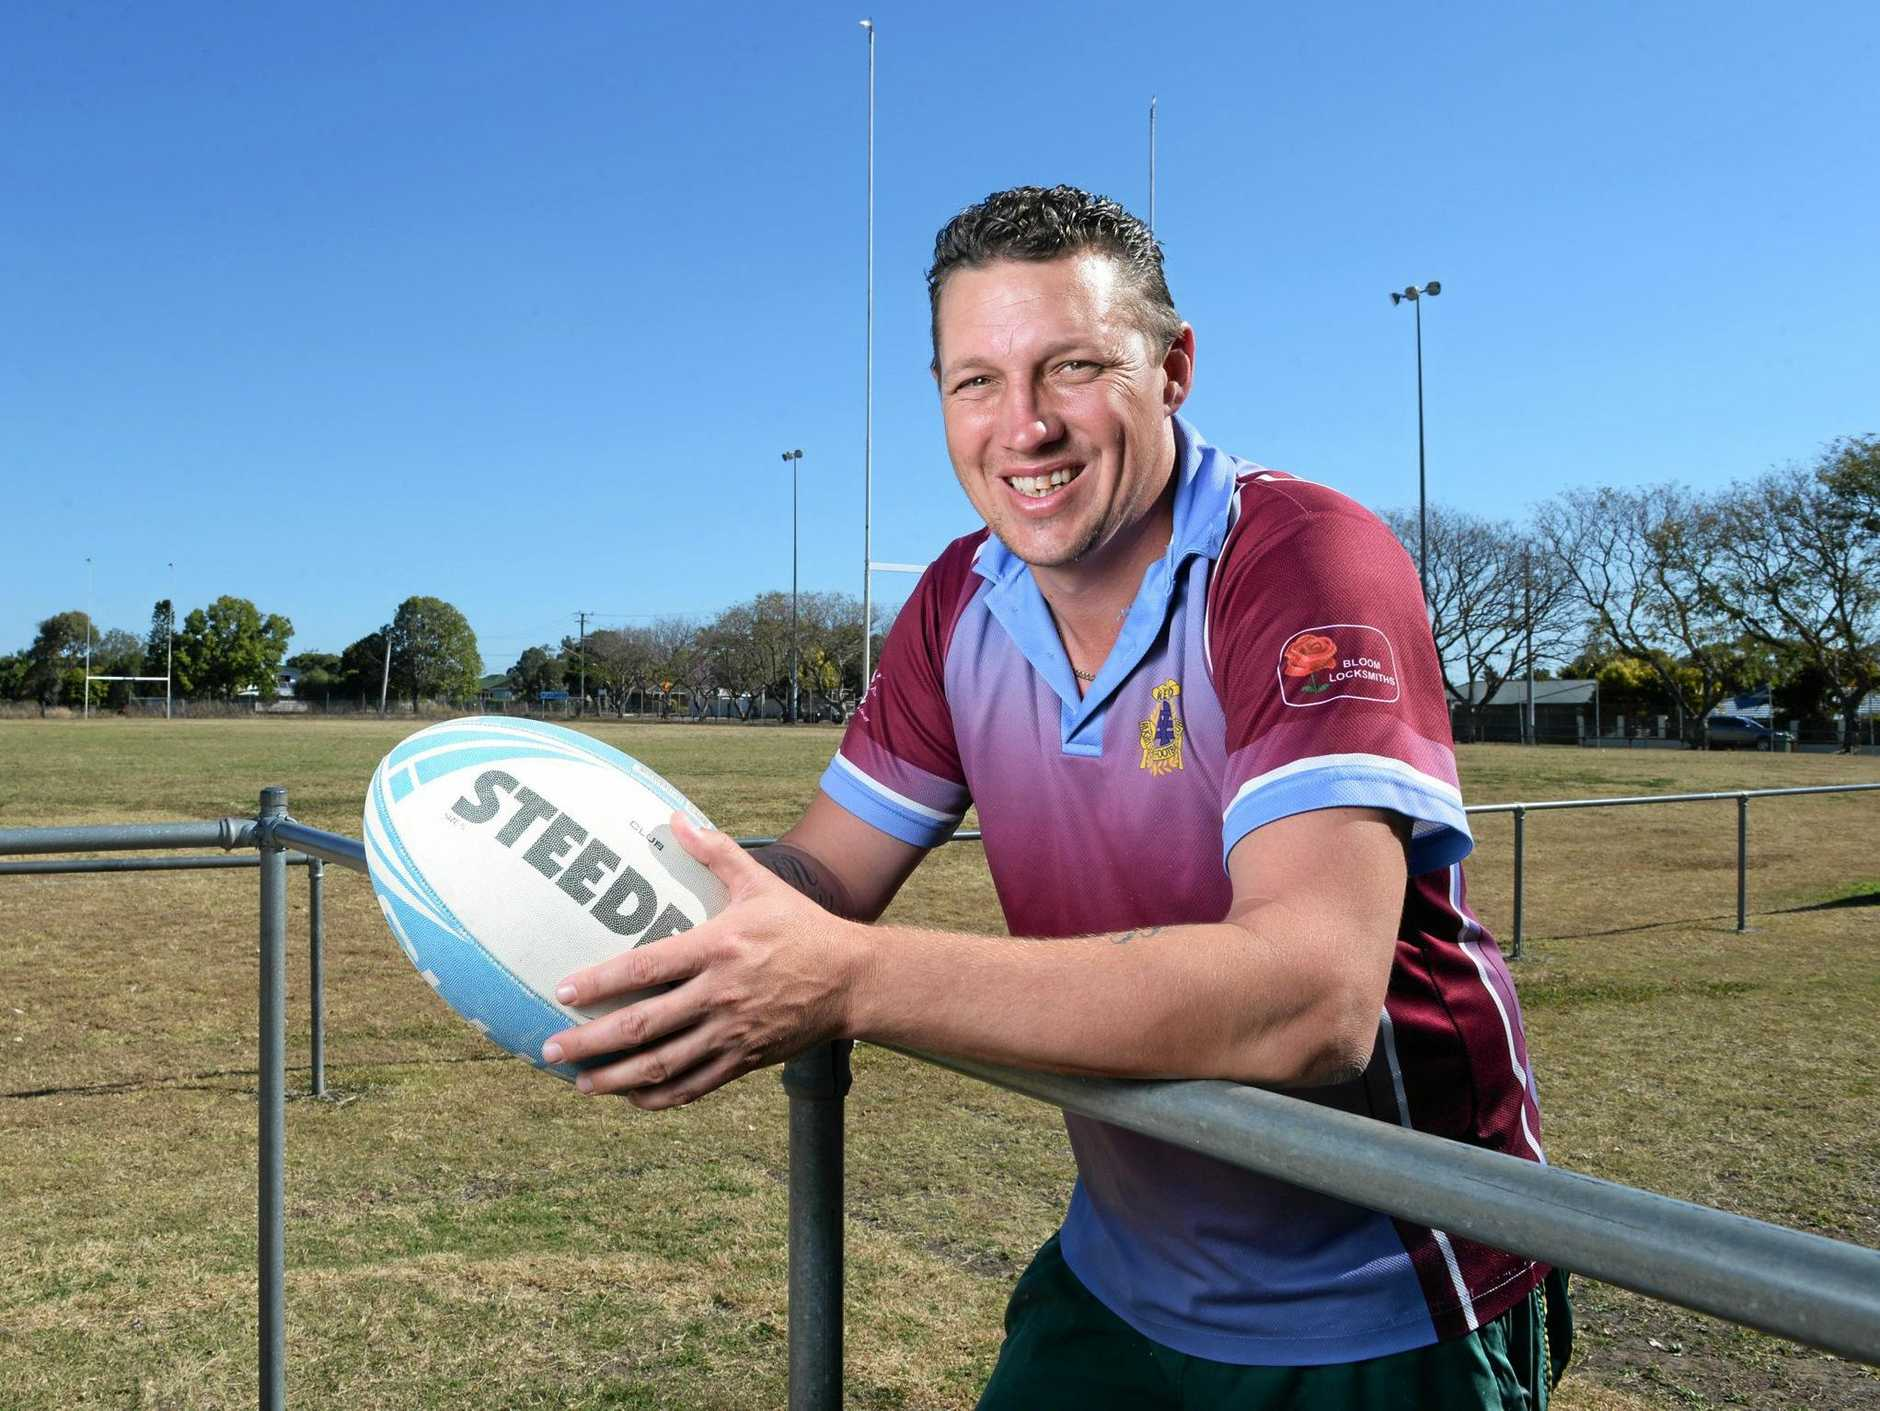 BETTING ON SUCCESS: West End coach Jae Woodward hopes to be shouted some liquid refreshments after Sunday's game.